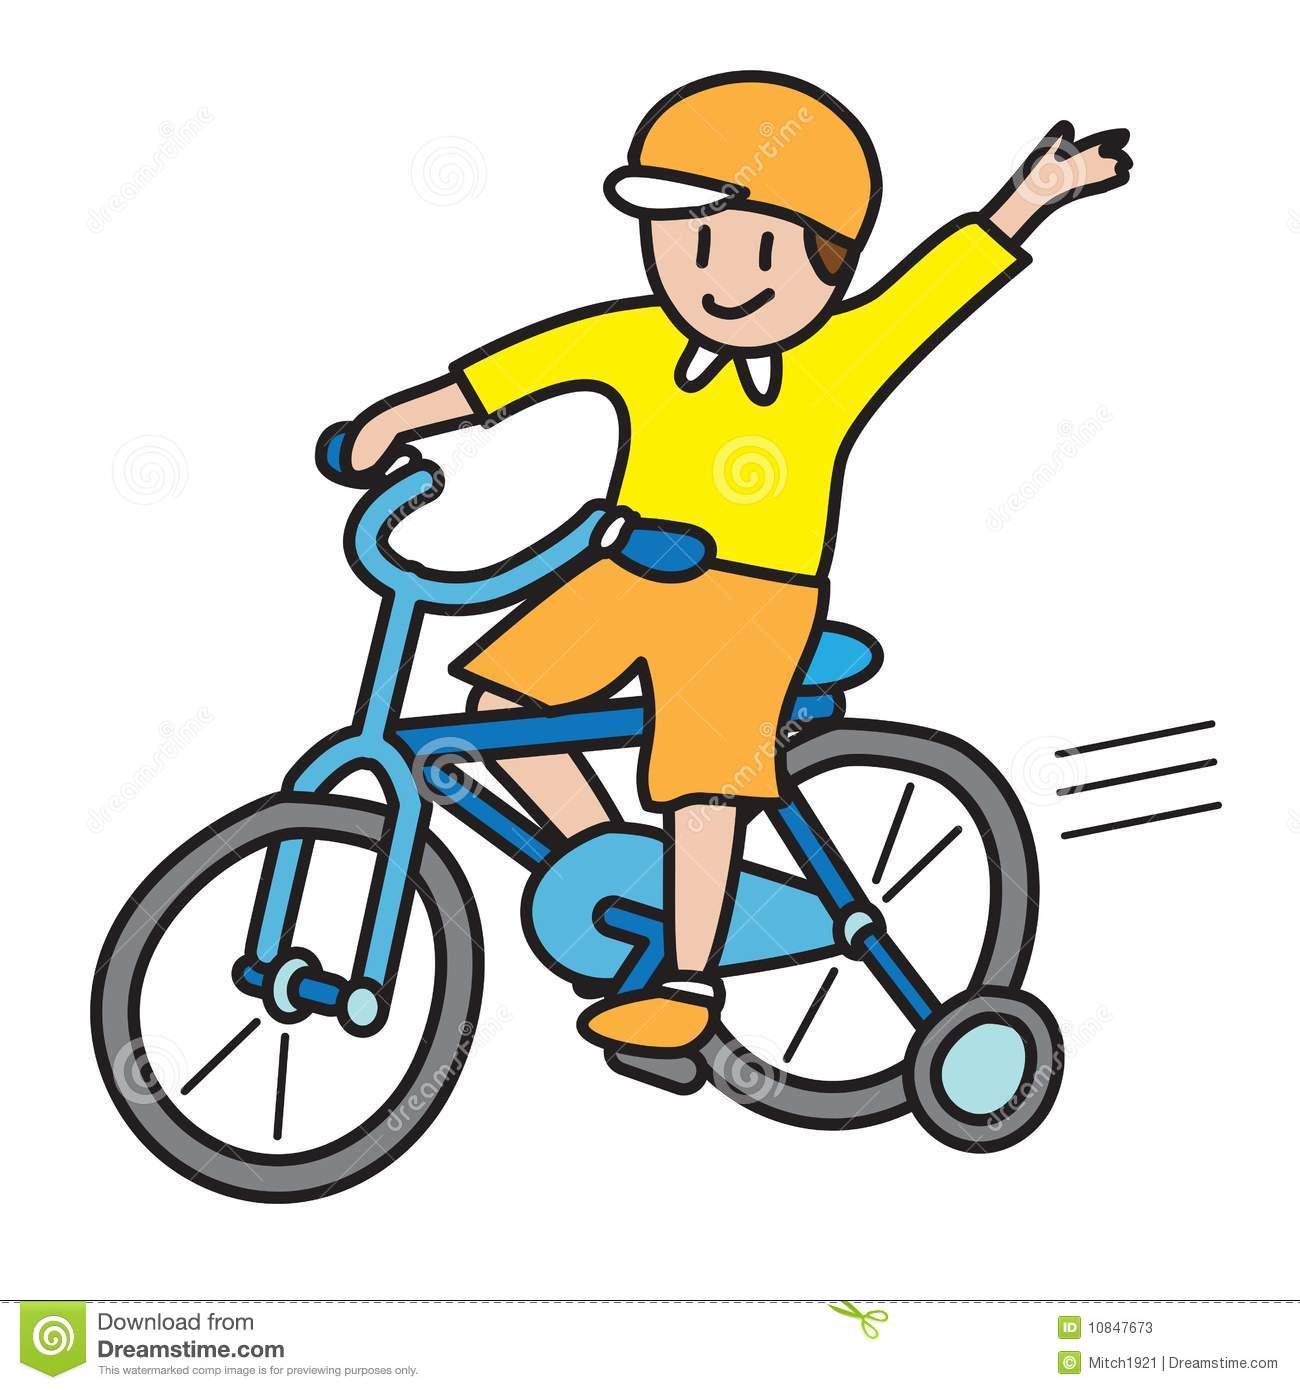 Boy Riding Bicycle Vector Illustration Isolated On White Background